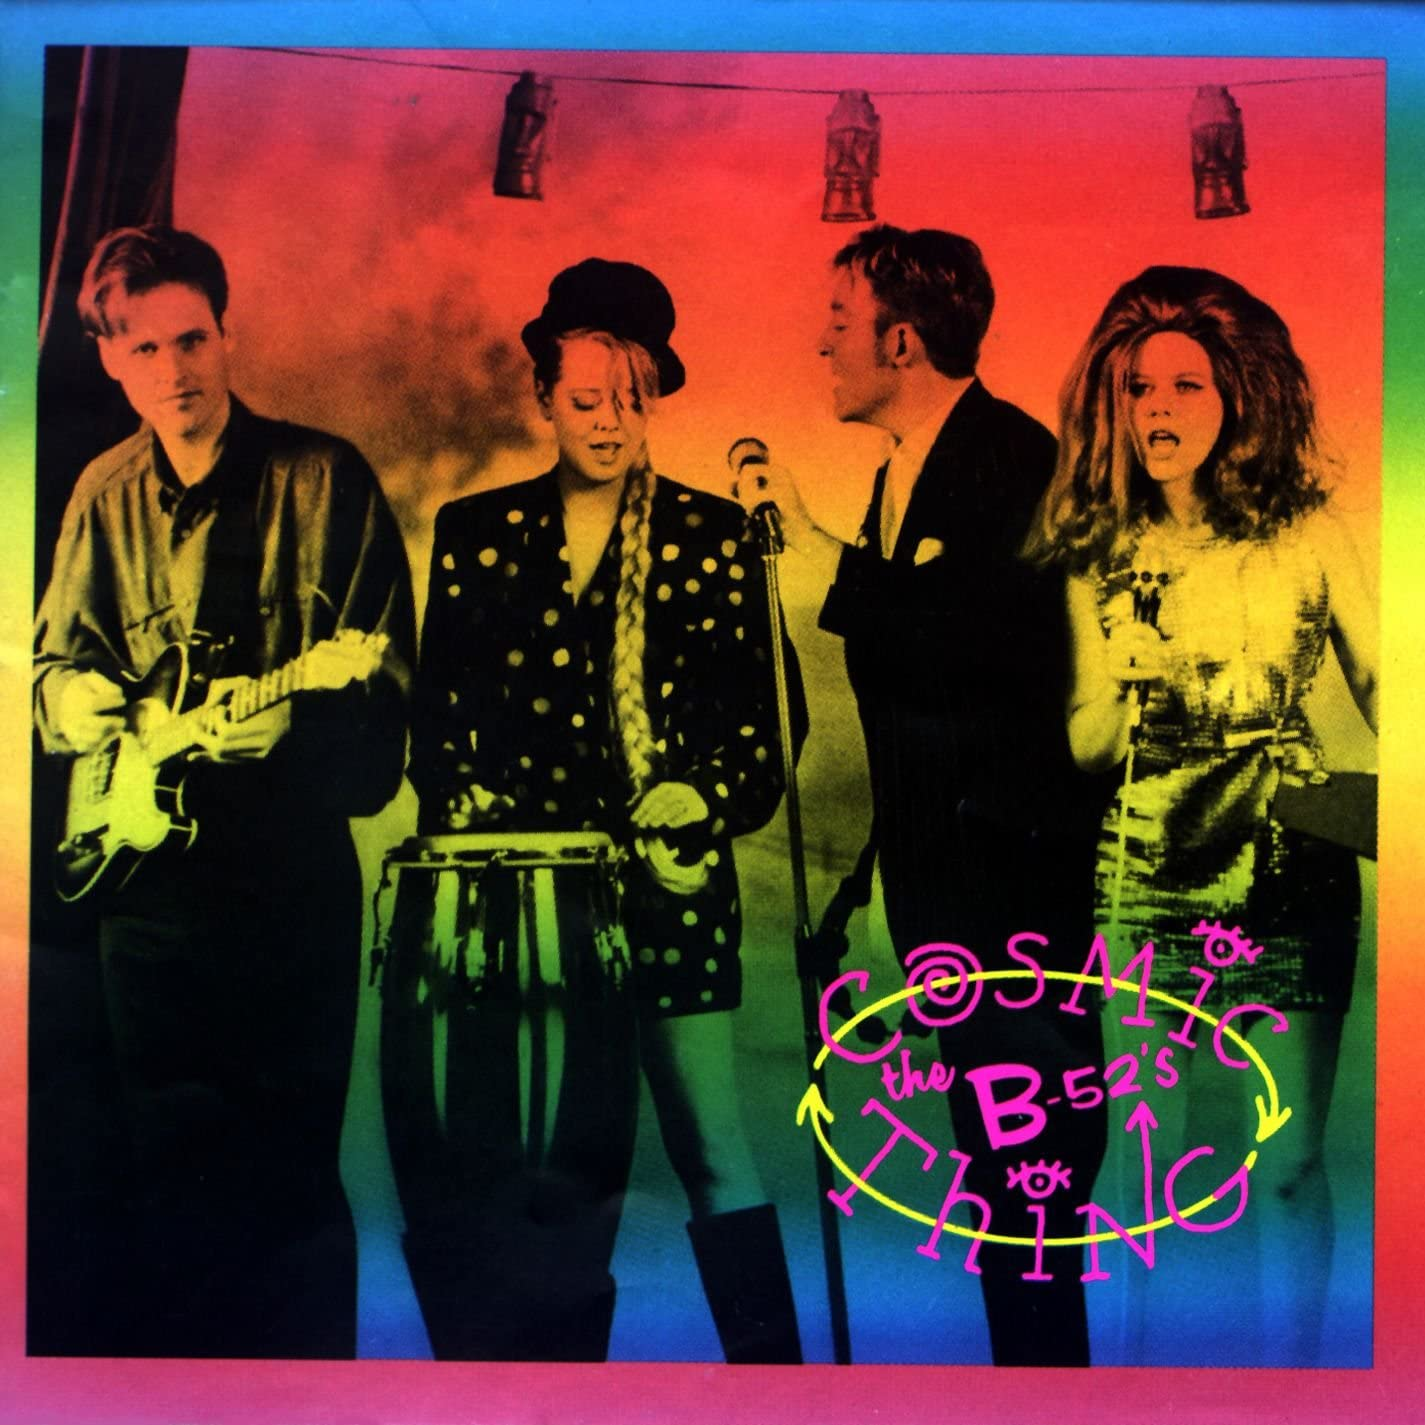 Talking Heads and B52s Repro Tour Poster